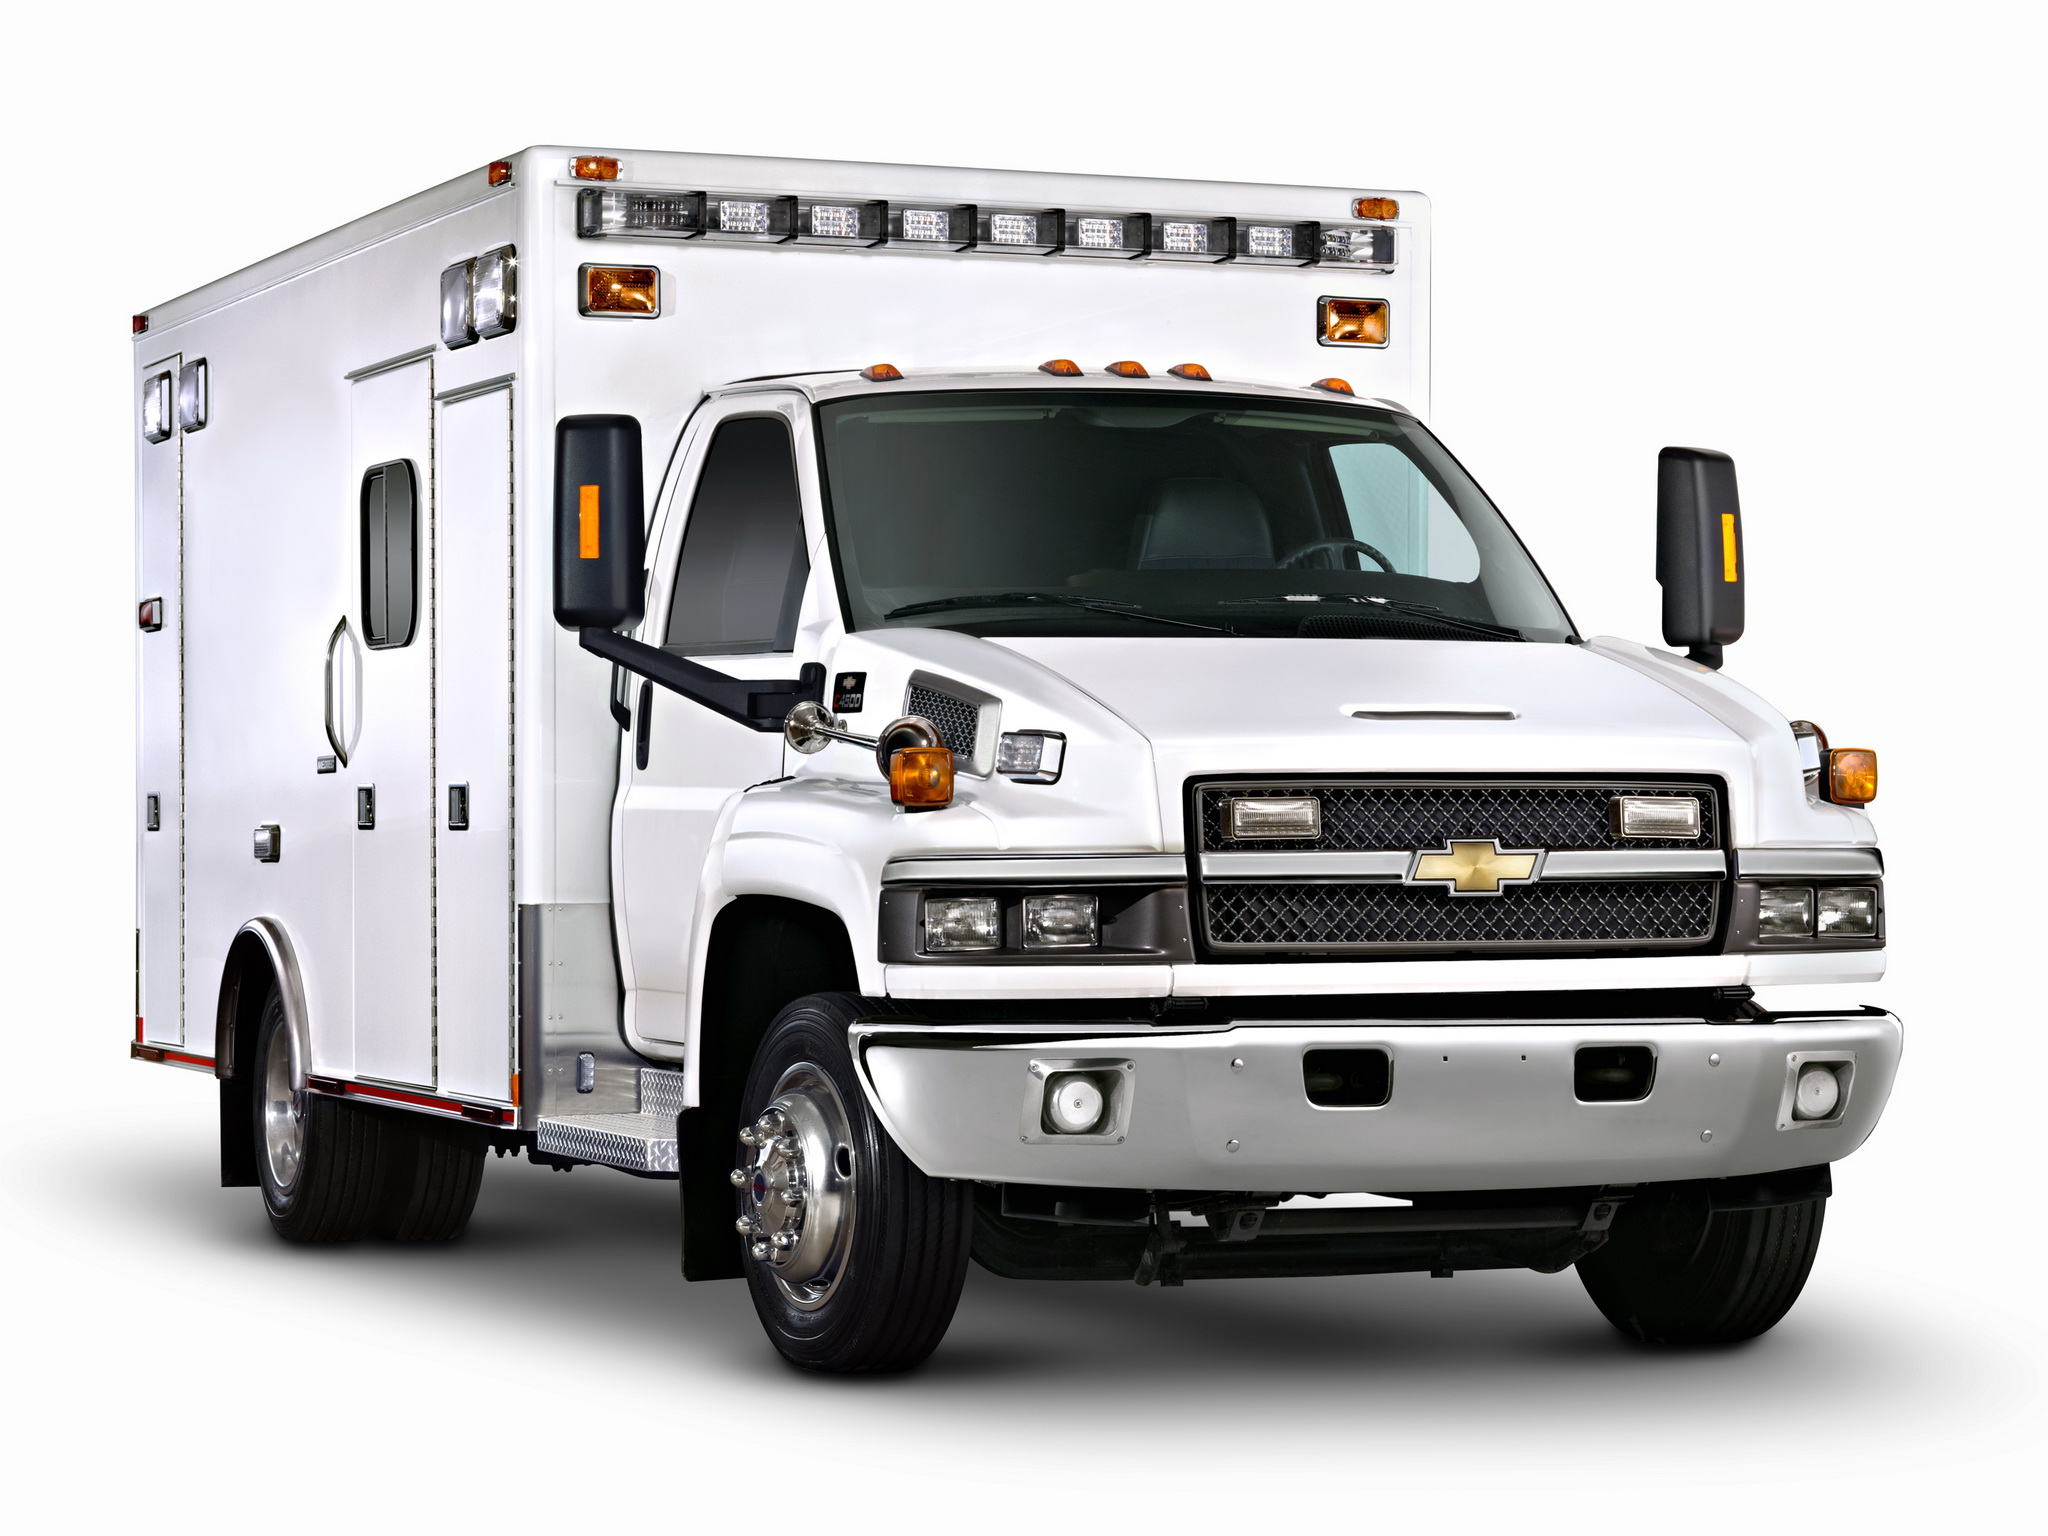 2010 Chevrolet Express C4500 Ambulance emergency firetruck